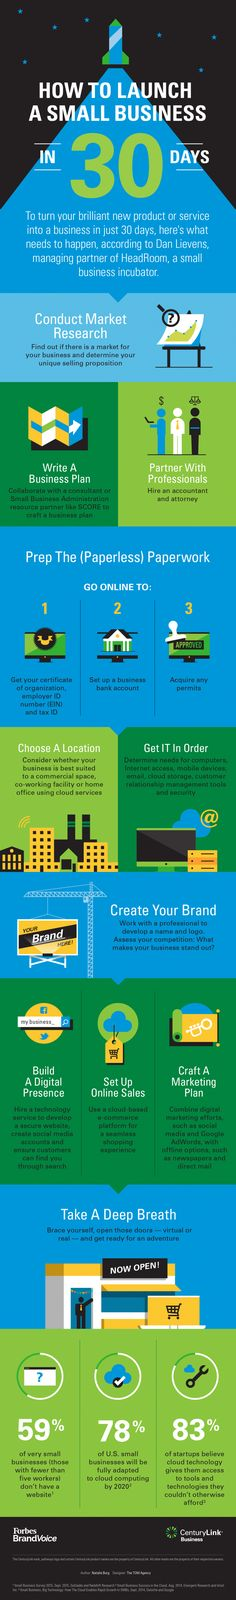 How To Launch A Small Business In 30 Days #Infographic #Business #Startup